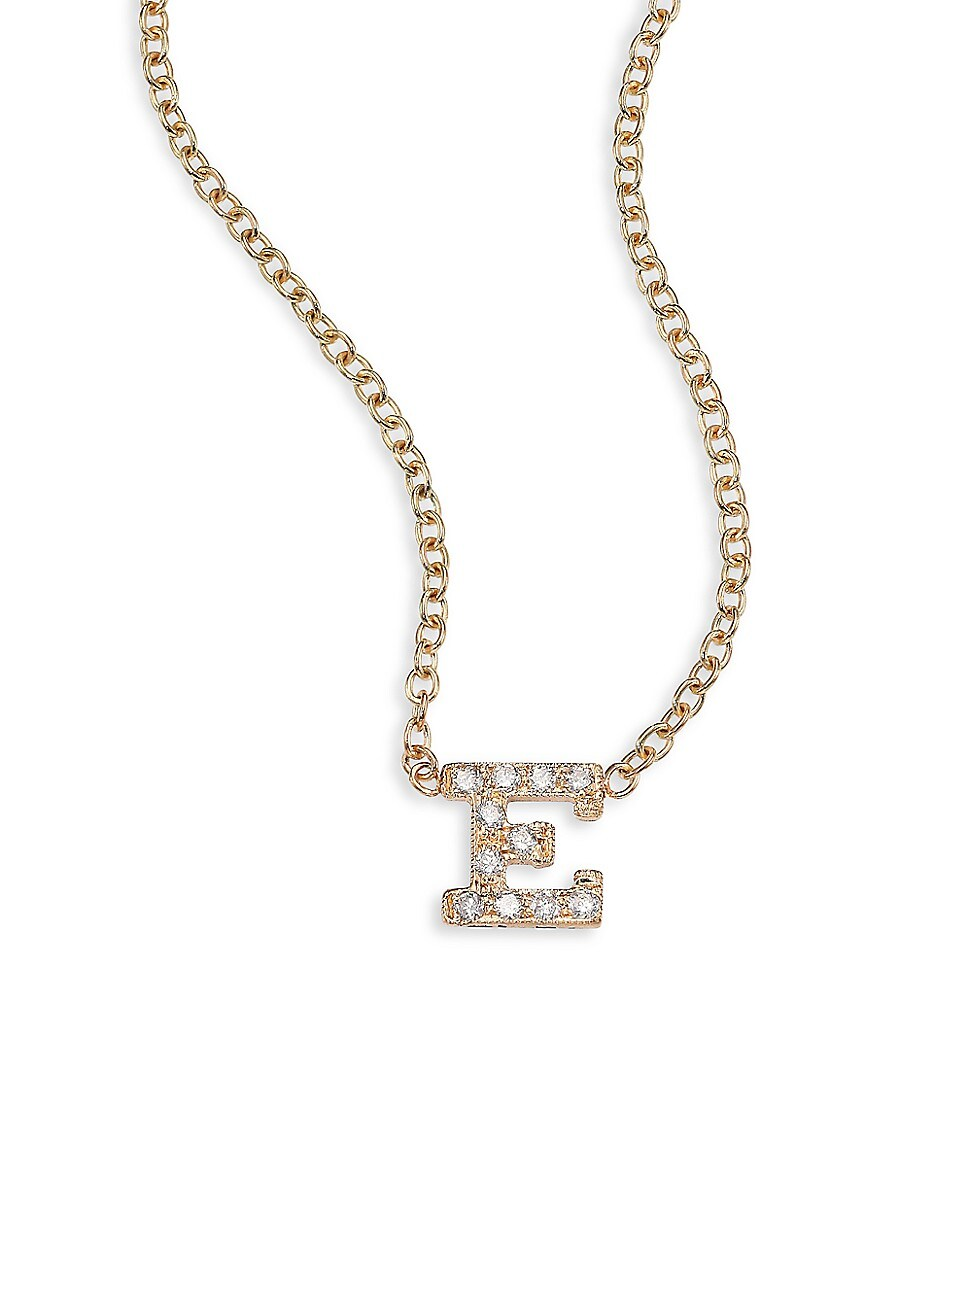 Zoë Chicco Women's Pavé Diamond & 14k Yellow Gold Initial Pendant Necklace In Initial E